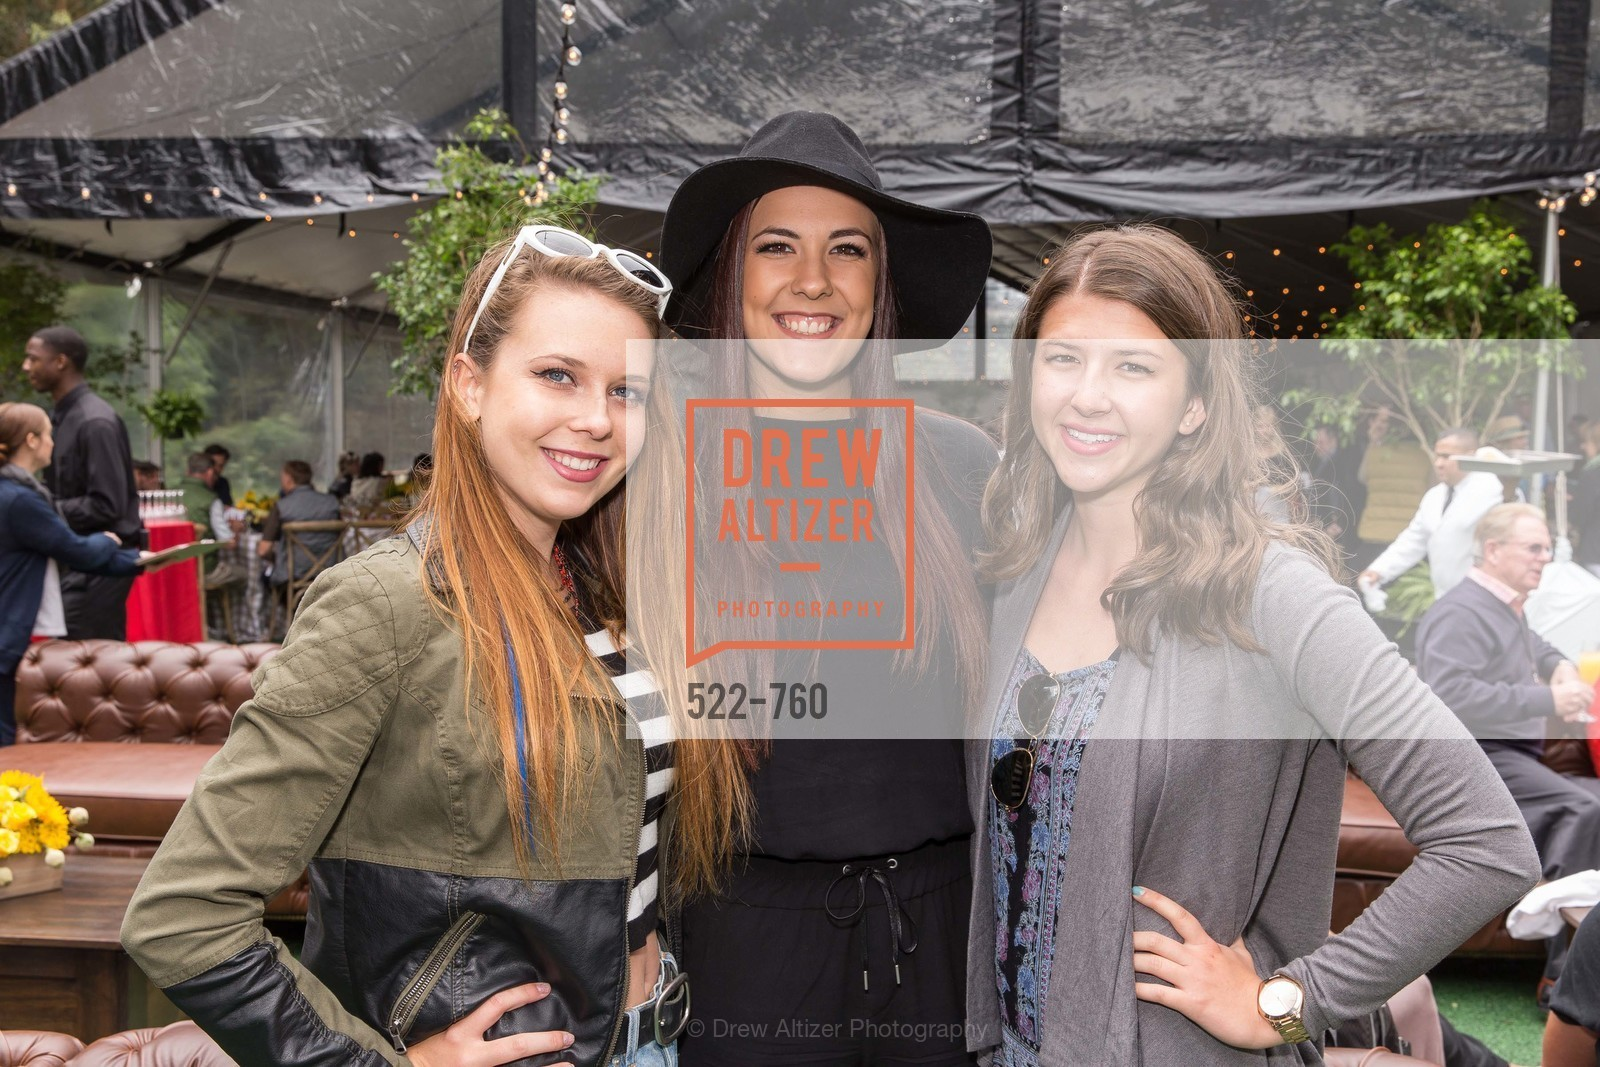 Amanda Montgomery, Brooke Montgomery, Madeleine Maresca, The Big Picnic! A Benefit & Concert for STERN GROVE FESTIVAL, US, June 14th, 2015,Drew Altizer, Drew Altizer Photography, full-service agency, private events, San Francisco photographer, photographer california